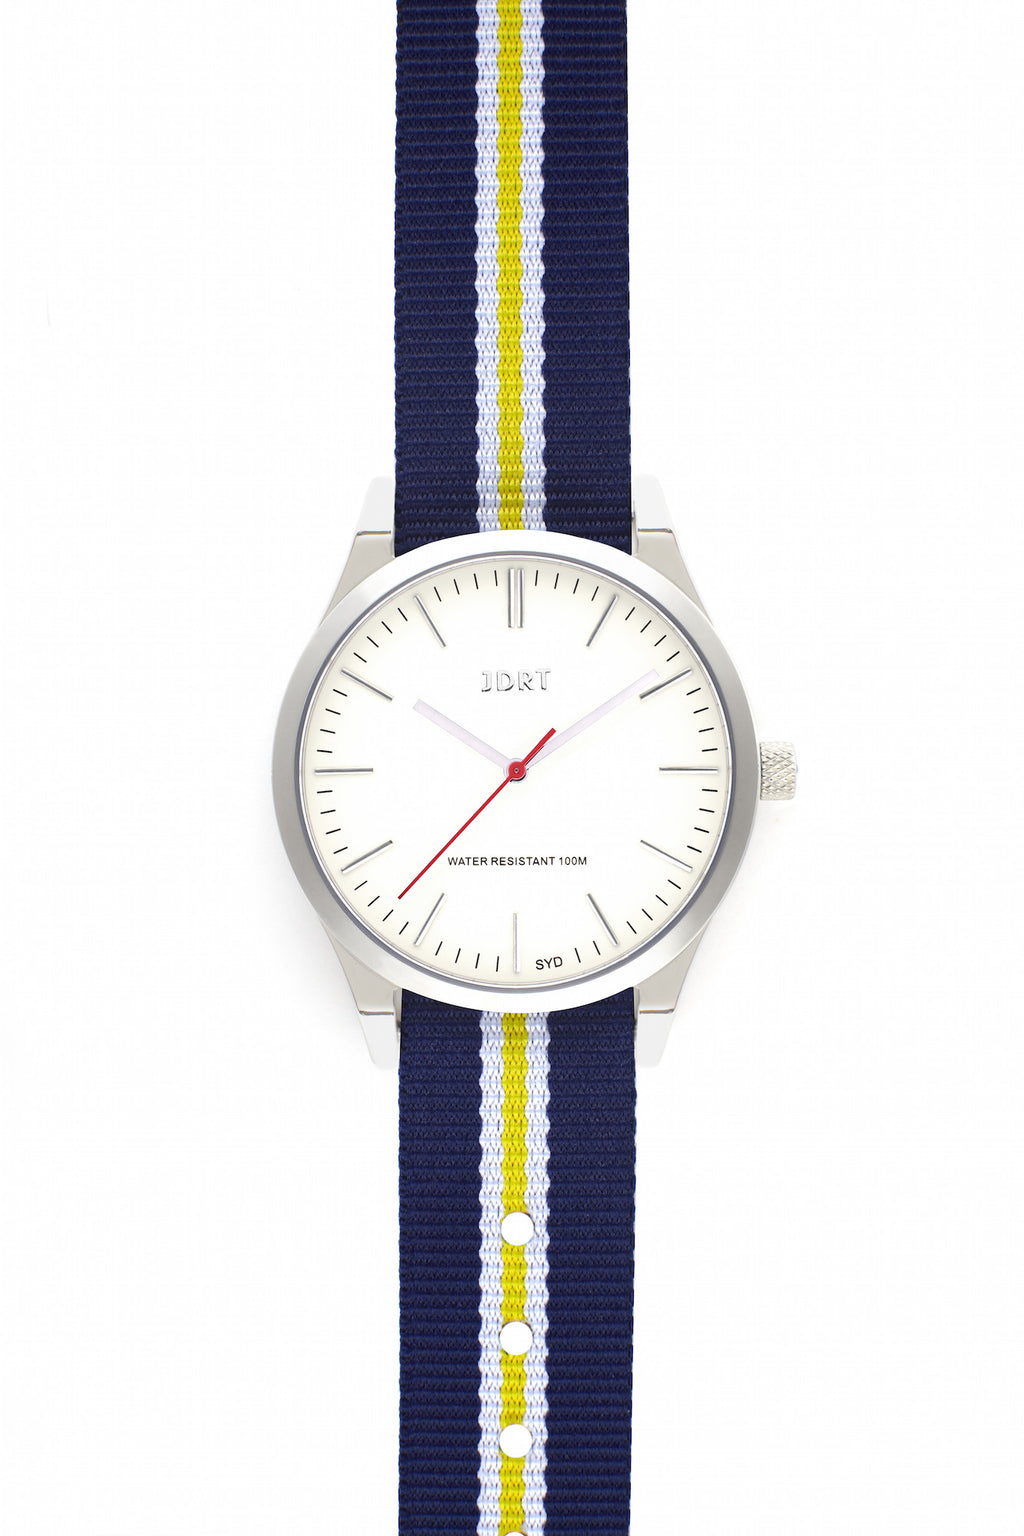 Antique White Face with Paddington NATO Watch Band